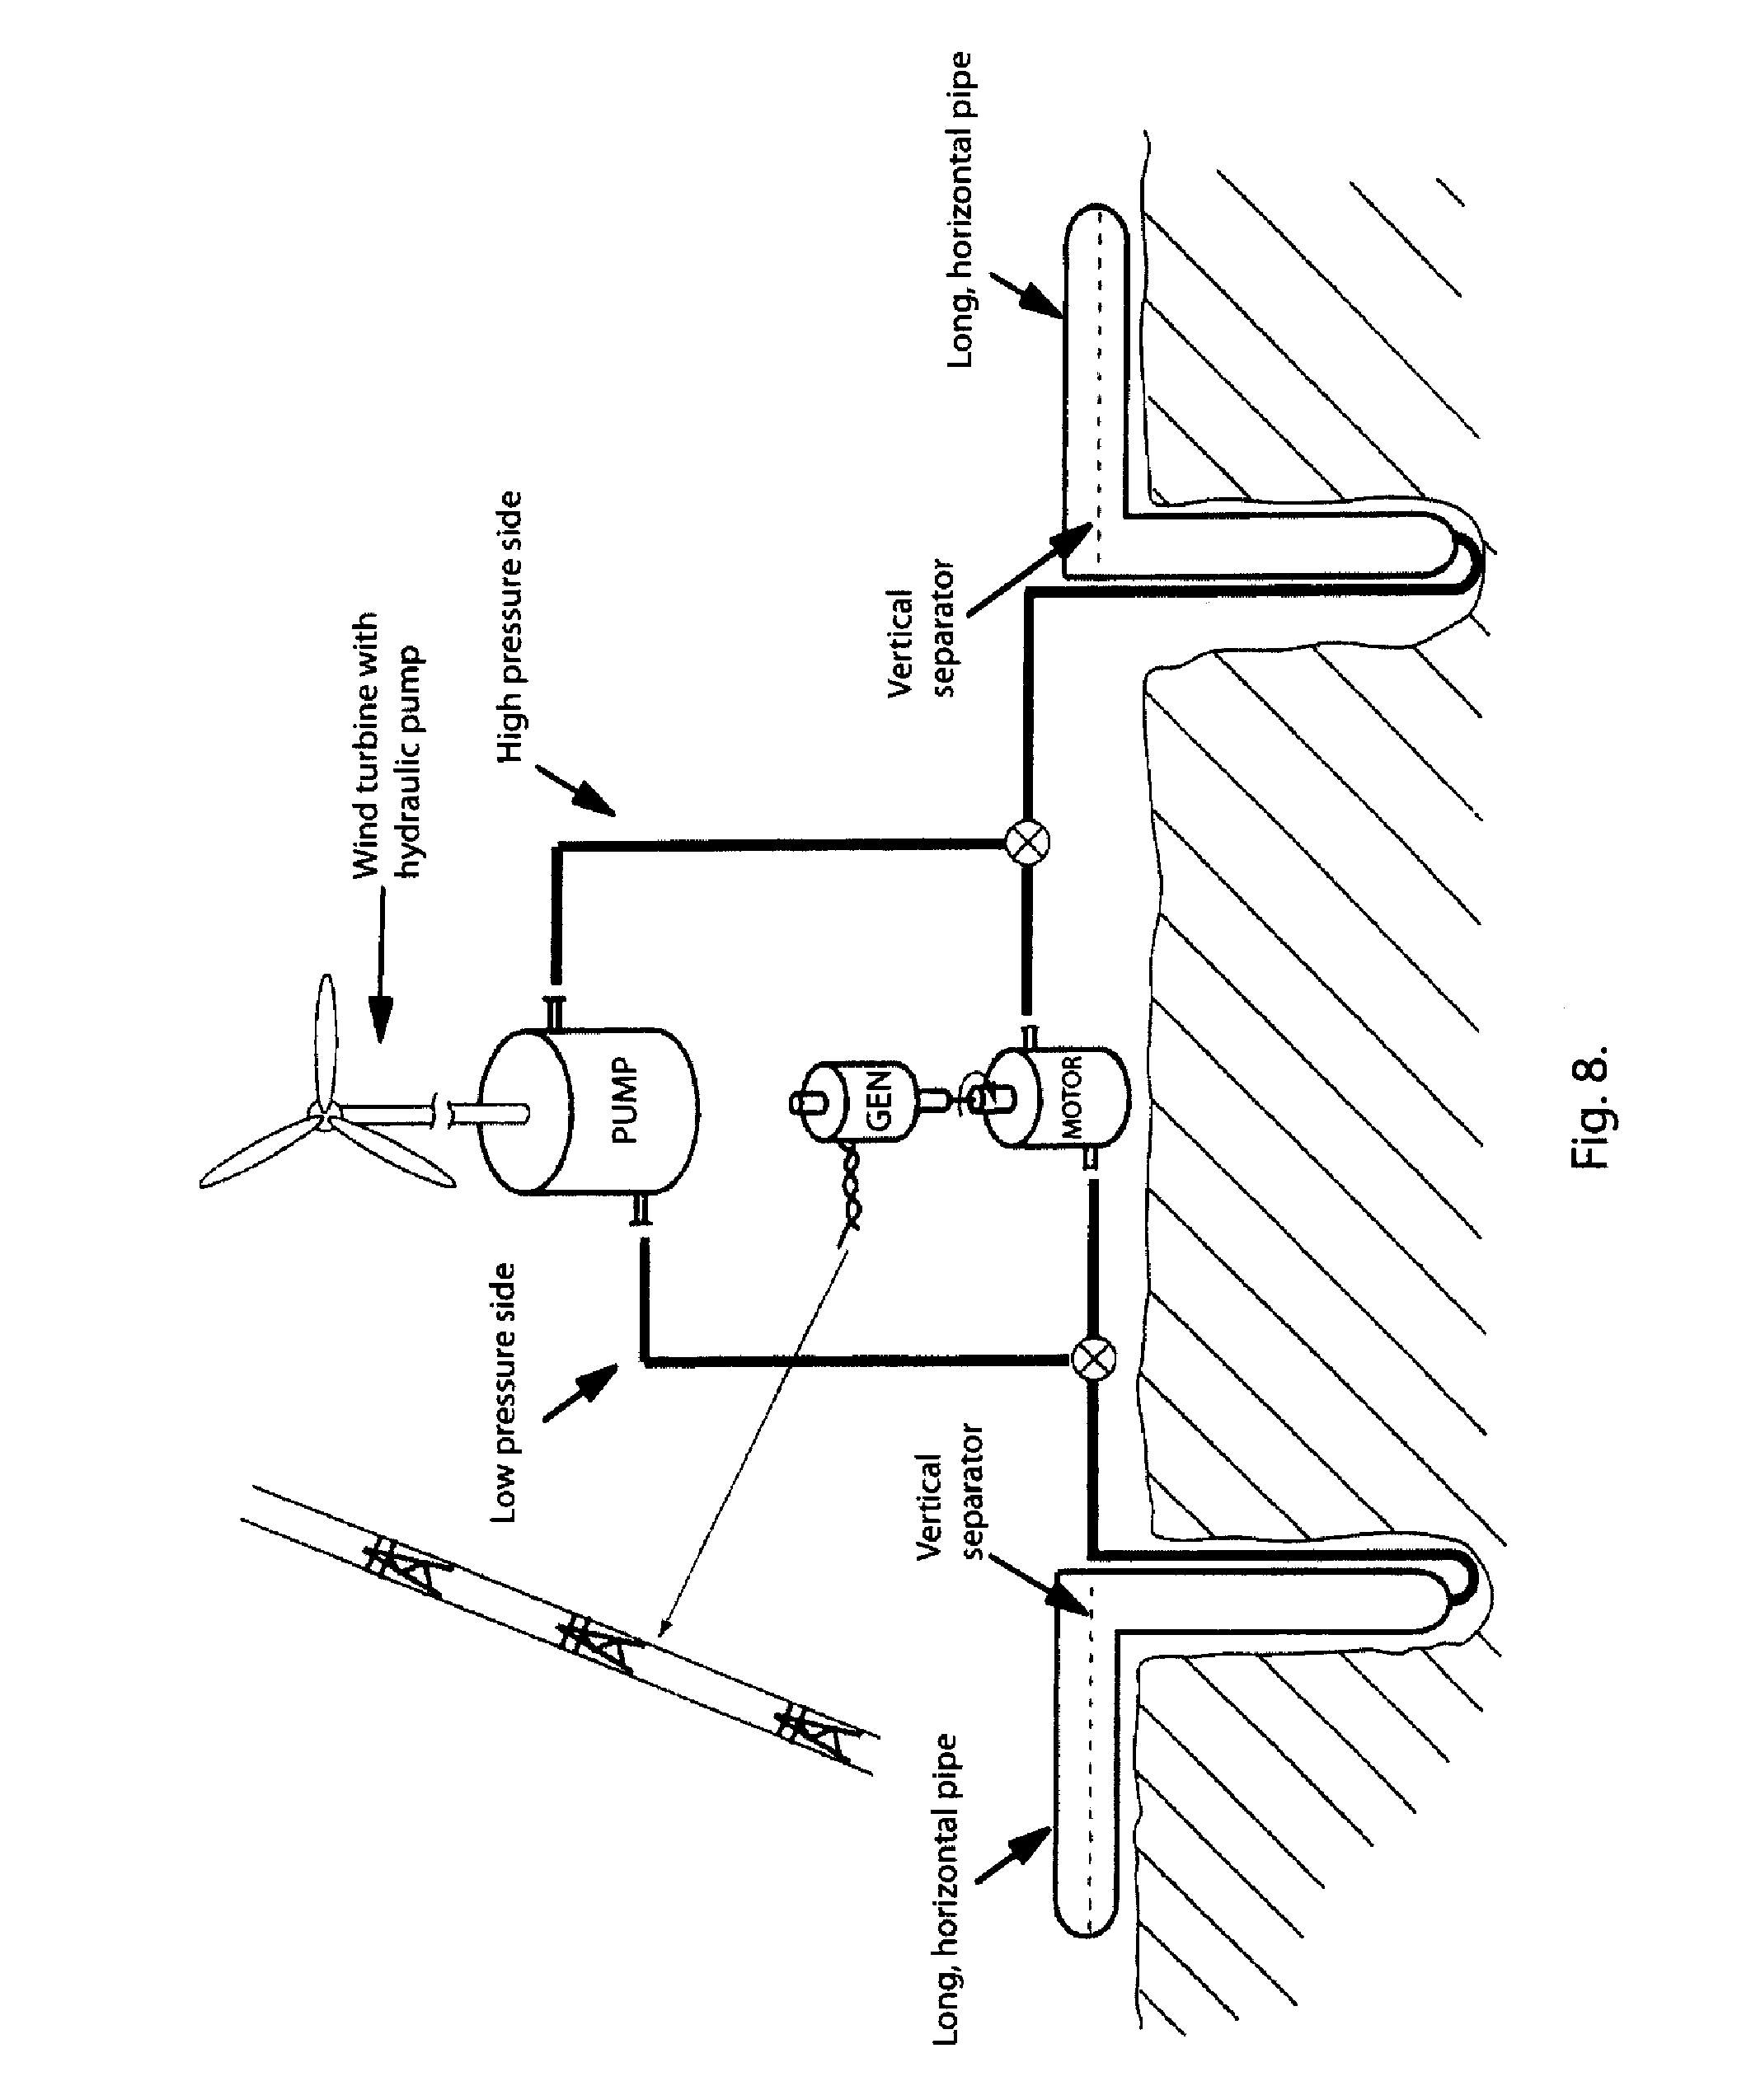 Patent US Wind To Electric Energy Conversion With